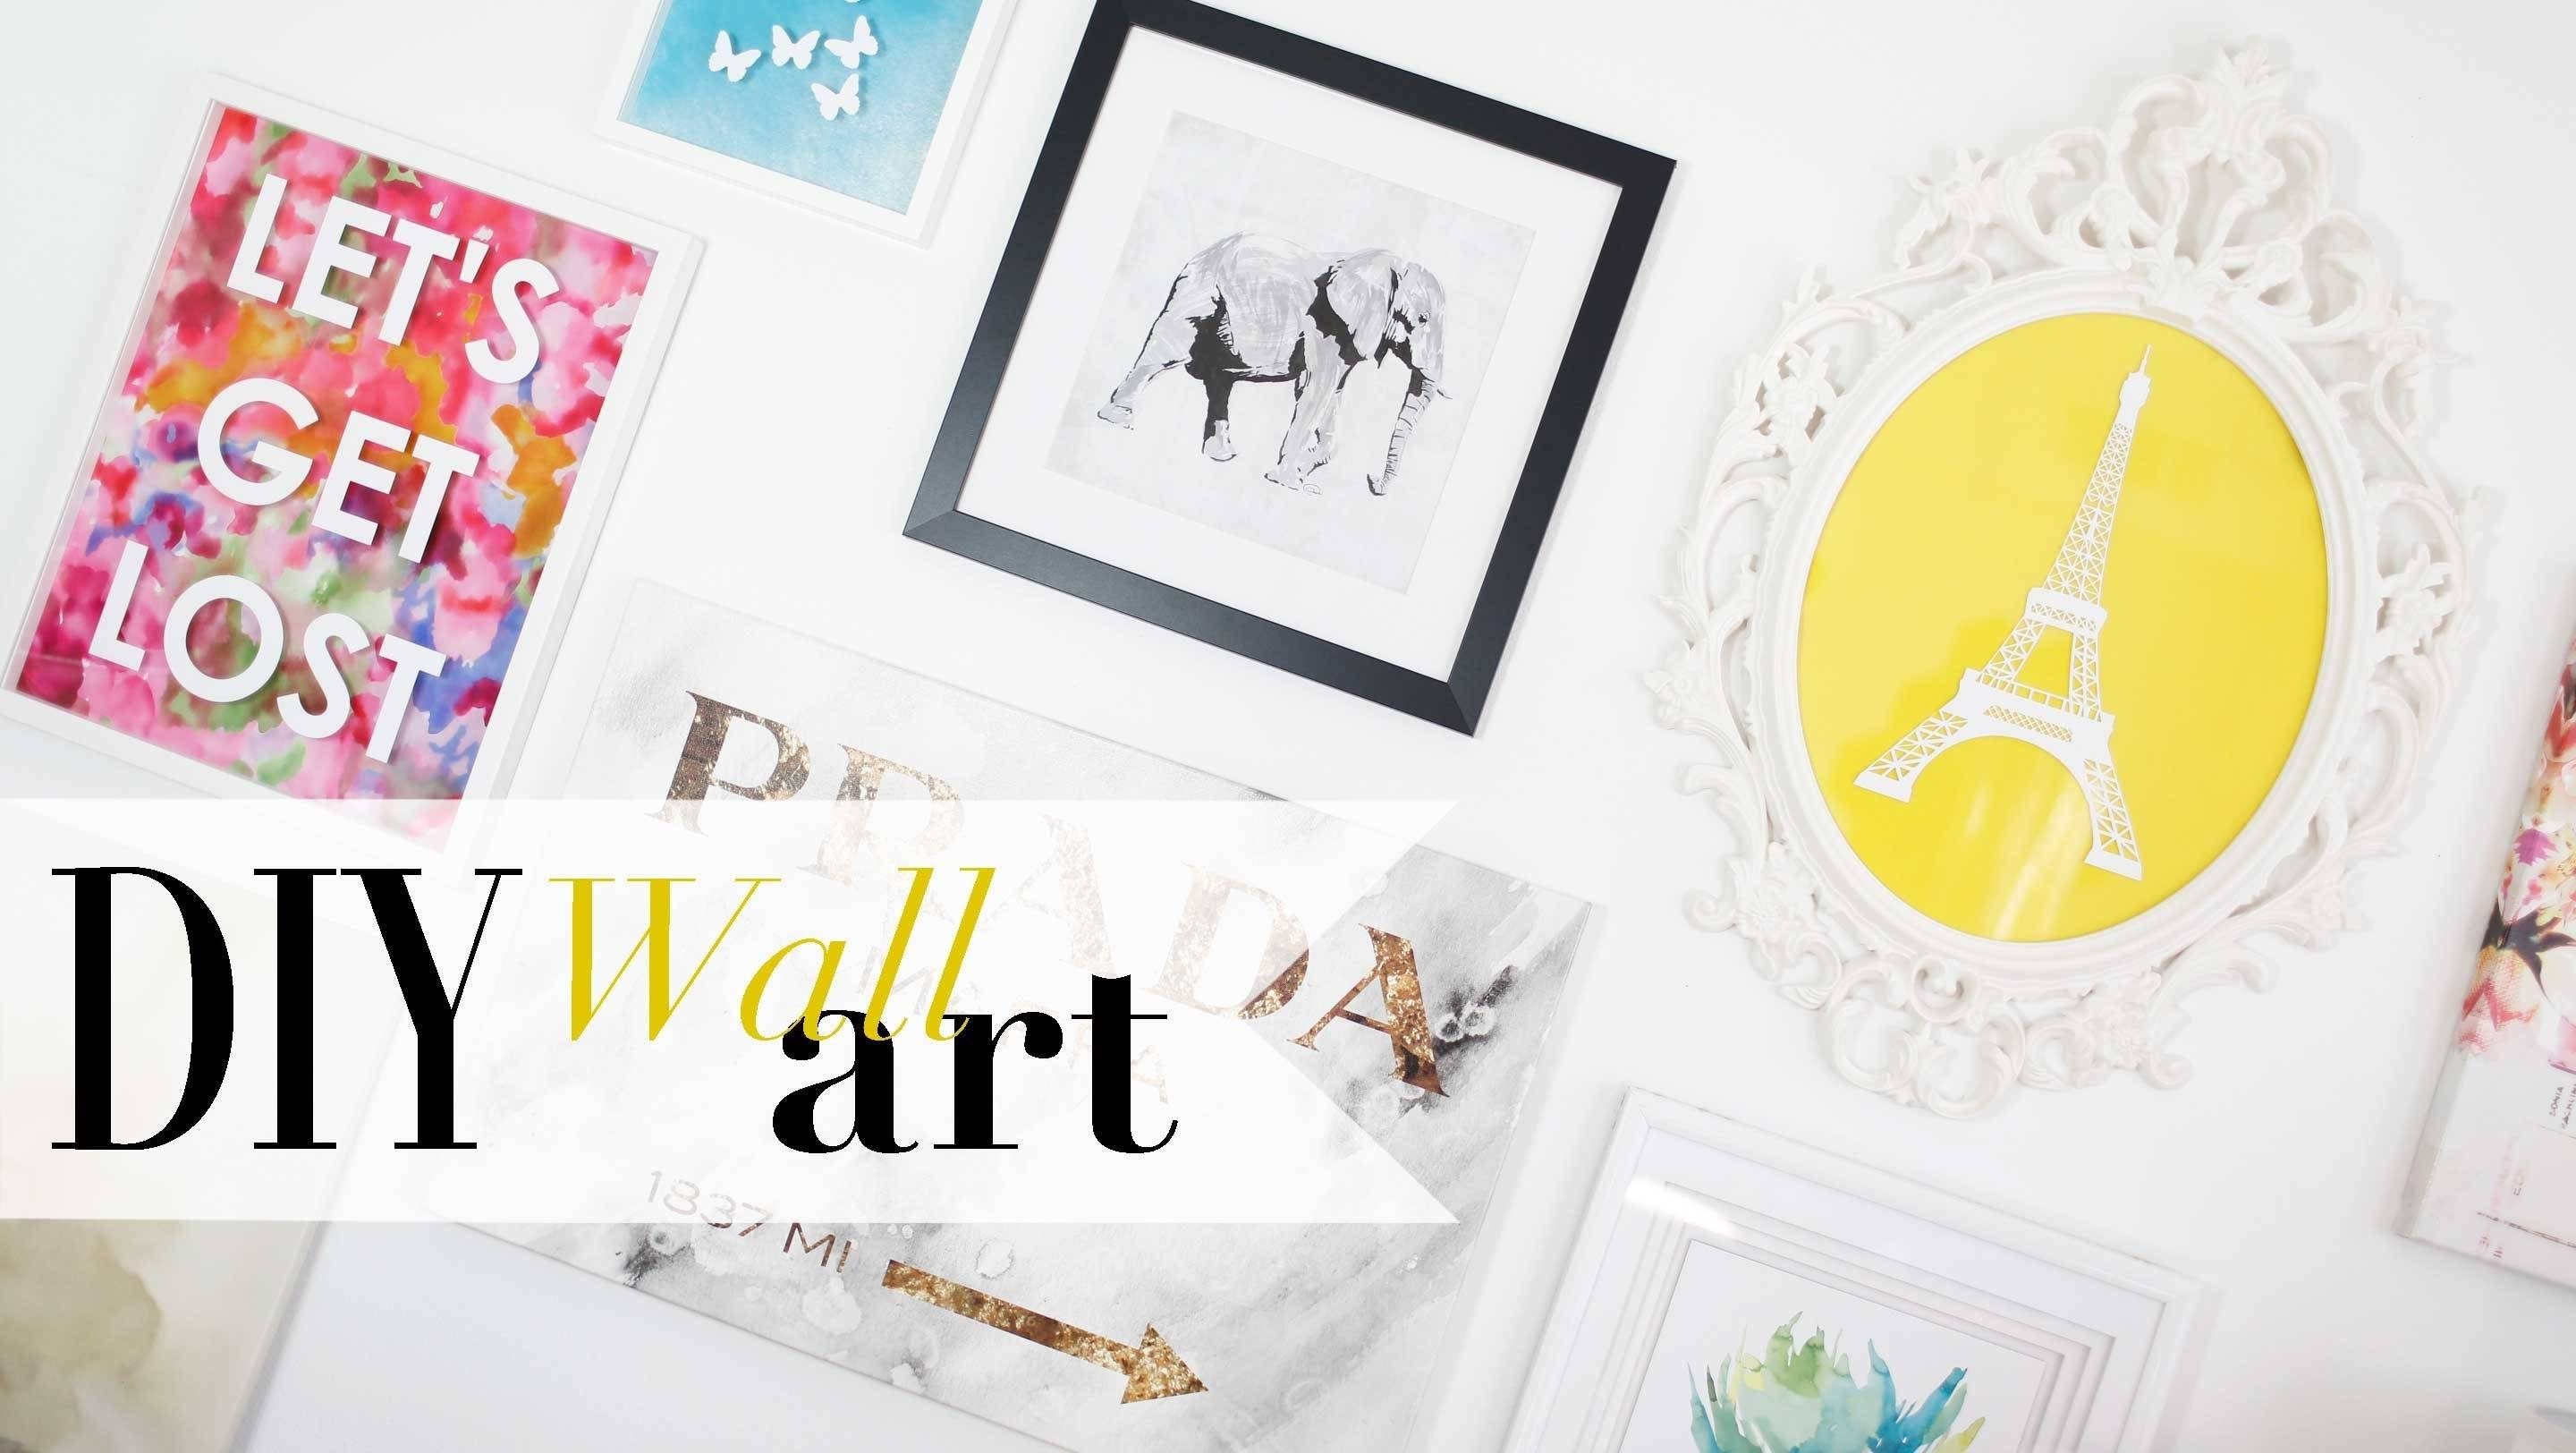 Diy Tumblr Gallery Wall Art Pinterest Inspired | Ann Le – Youtube In Most Popular Prada Wall Art (View 10 of 25)